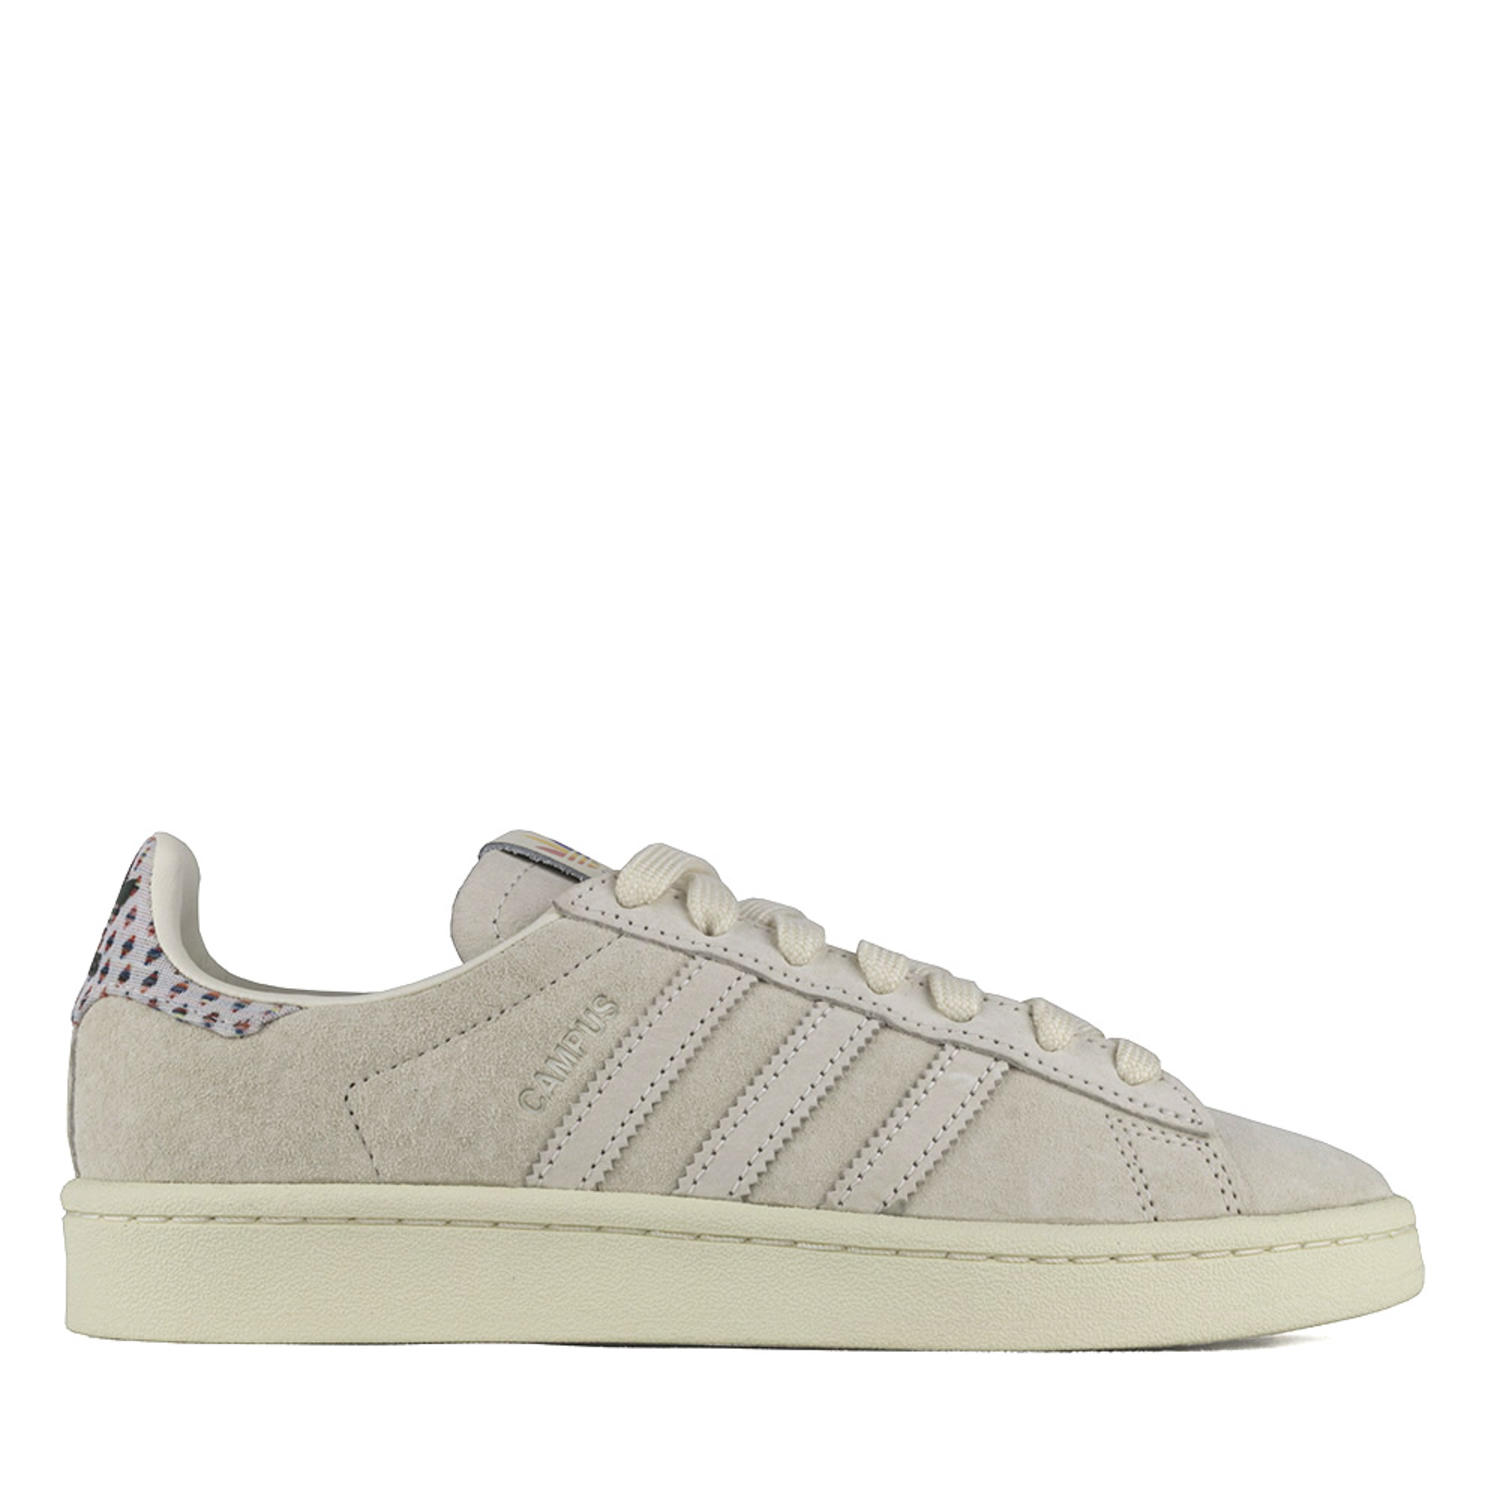 timeless design 76232 b2be2 Adidas Campus Pride B42000